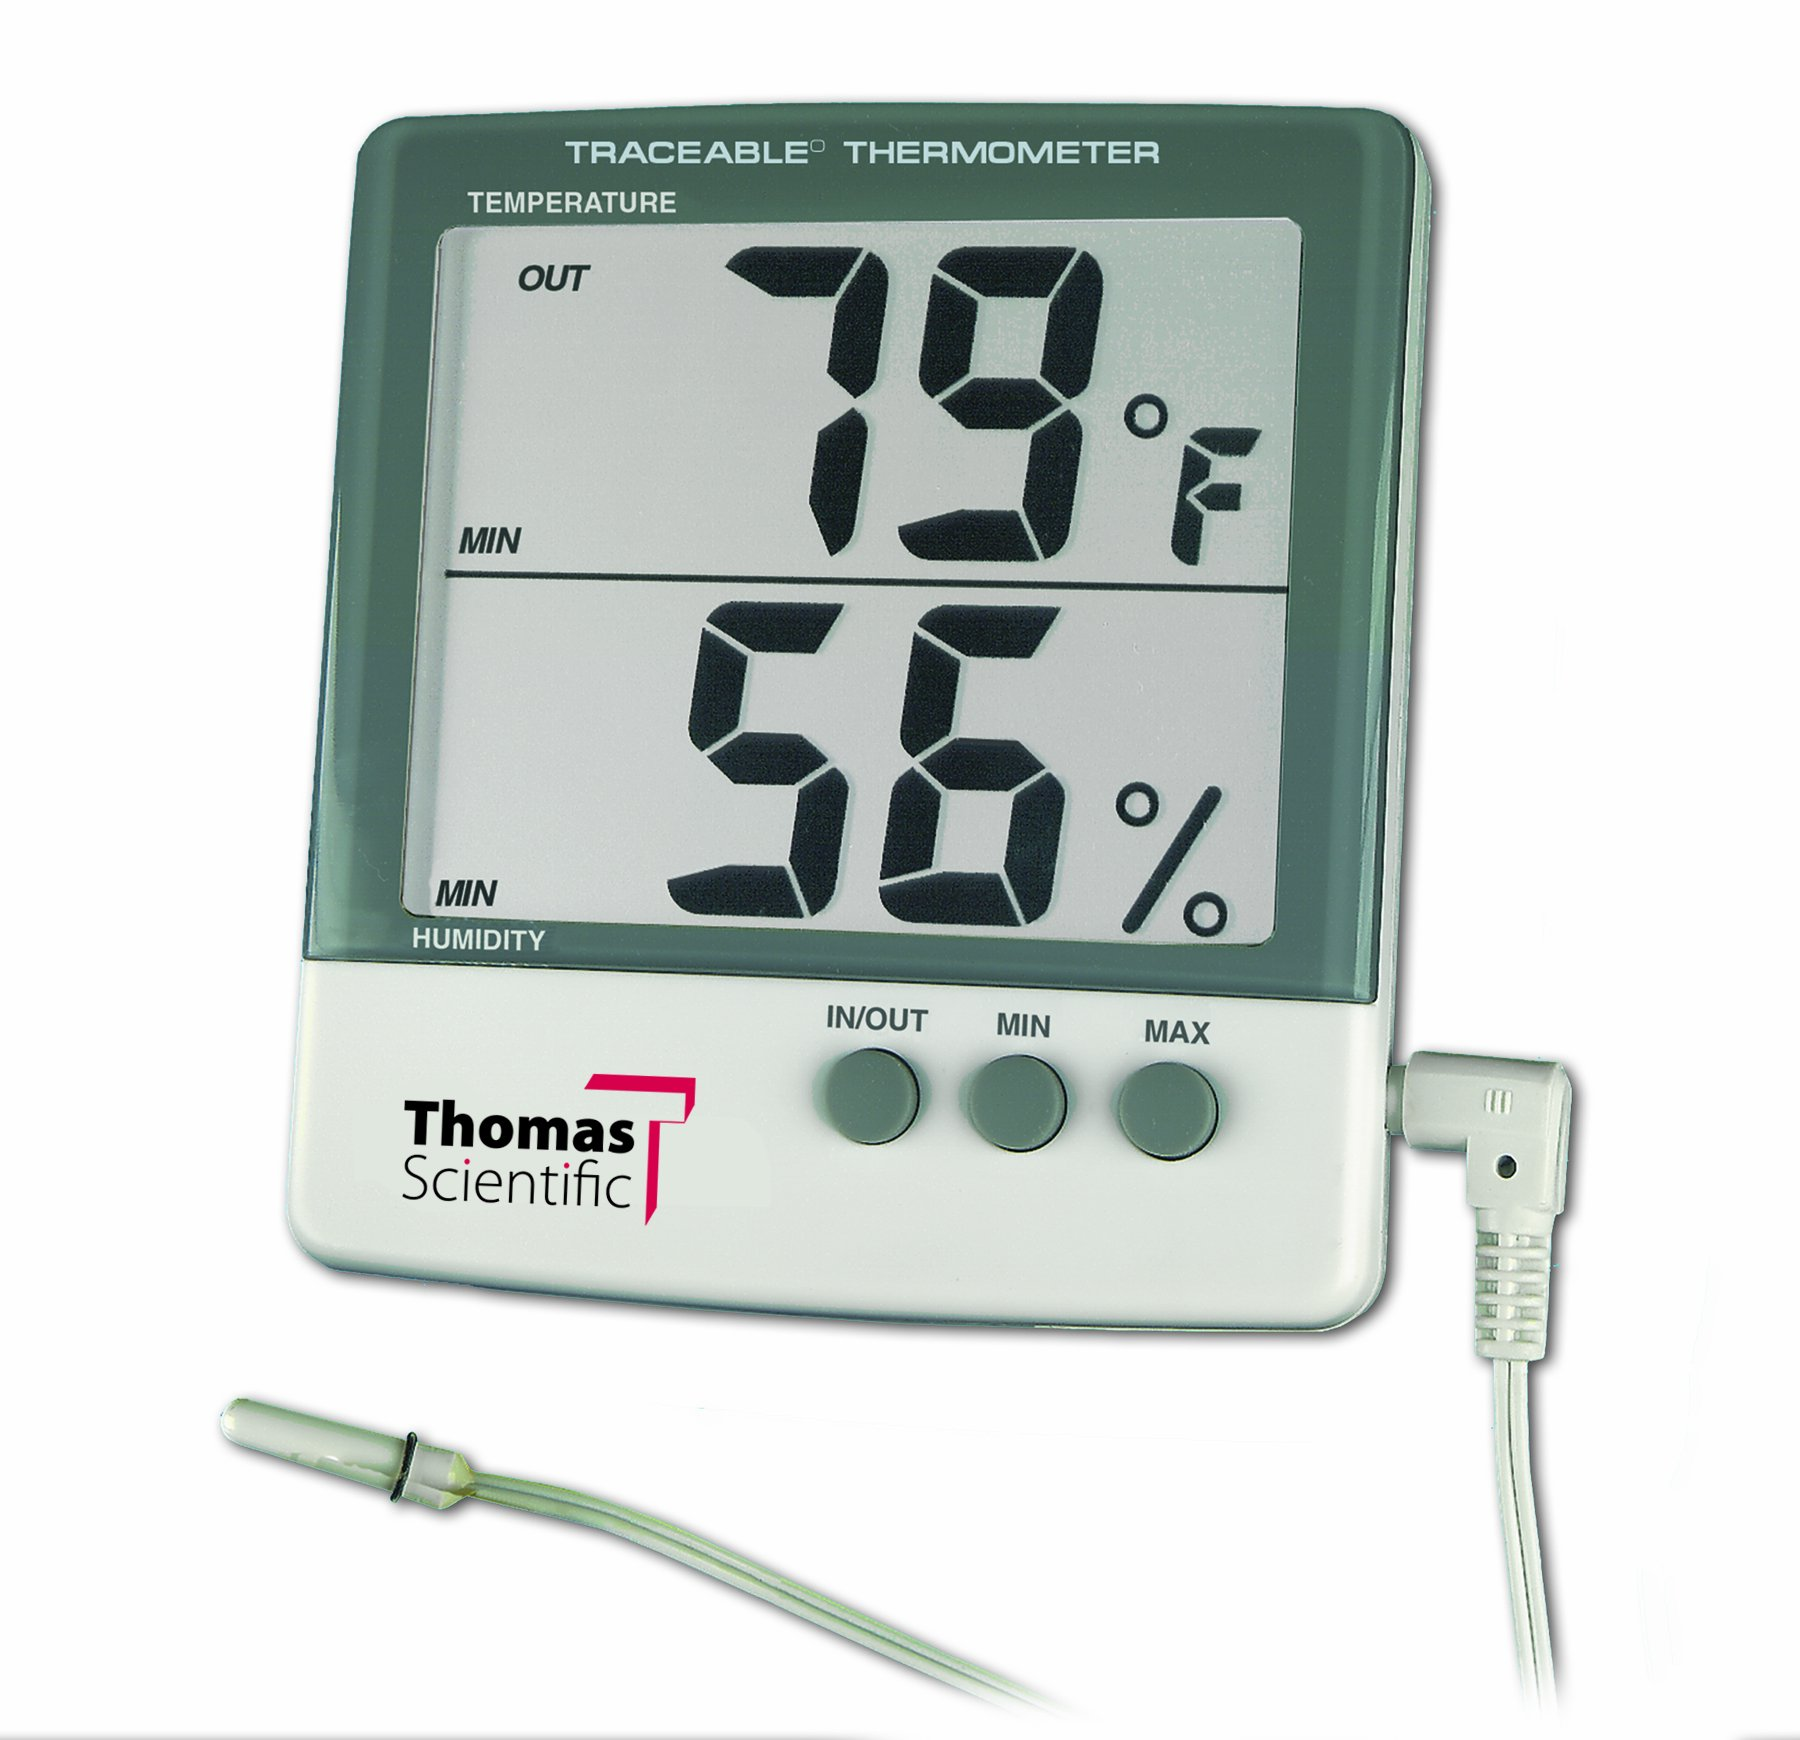 Thomas 4184 ABS Plastic Traceable Jumbo Thermo-Hygrometer, 1-1/8'' High Display, 1 percent RH Resolution, -1 degree C Accuracy